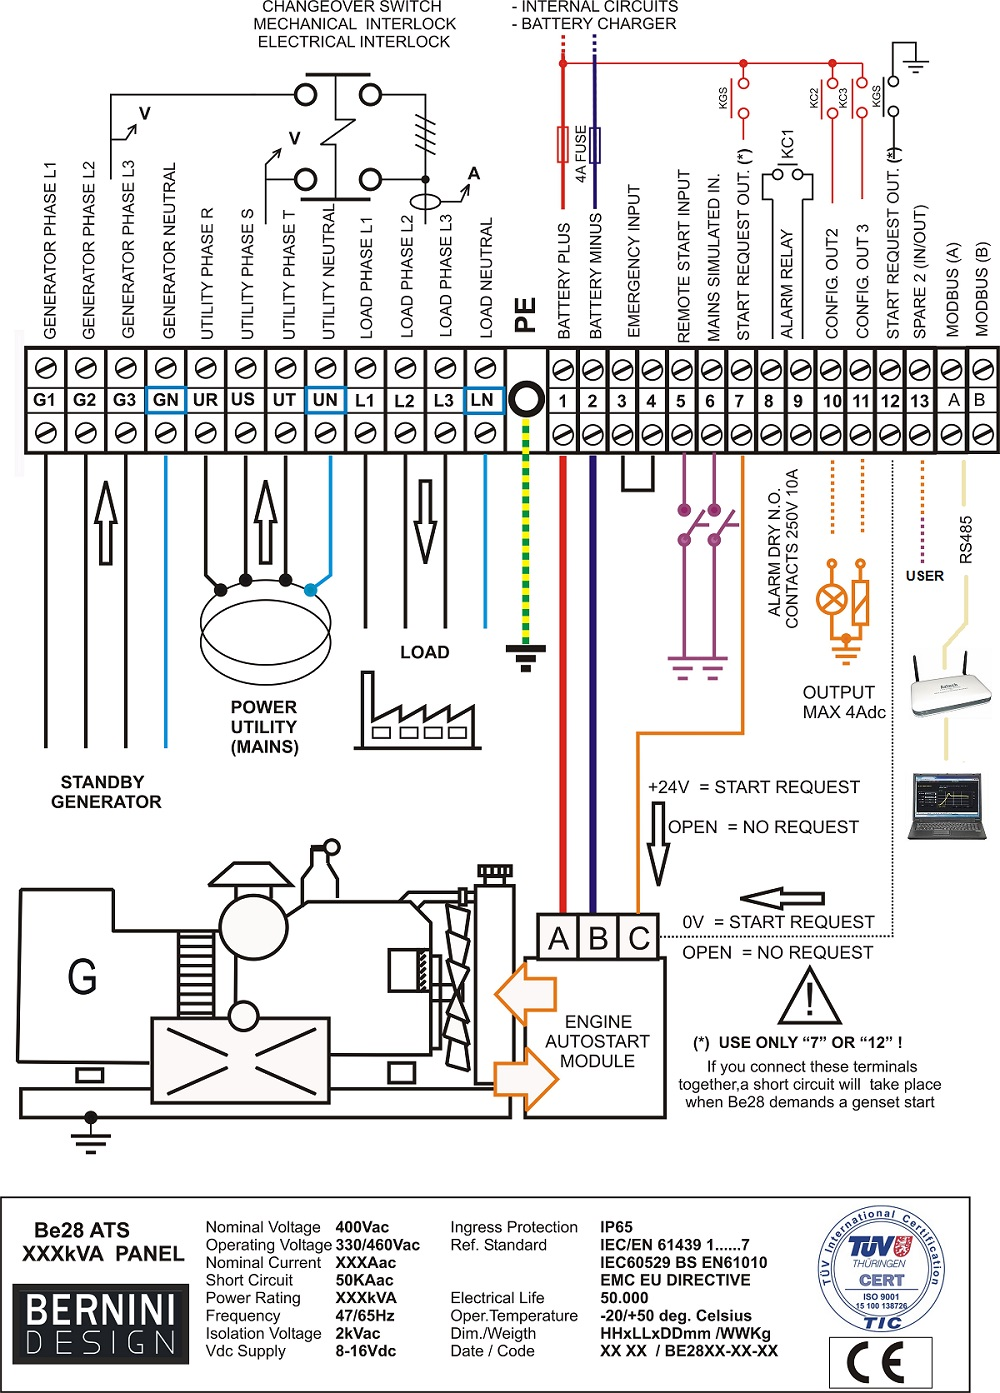 automatic transfer switch wiring diagram genset controller rh bernini design com